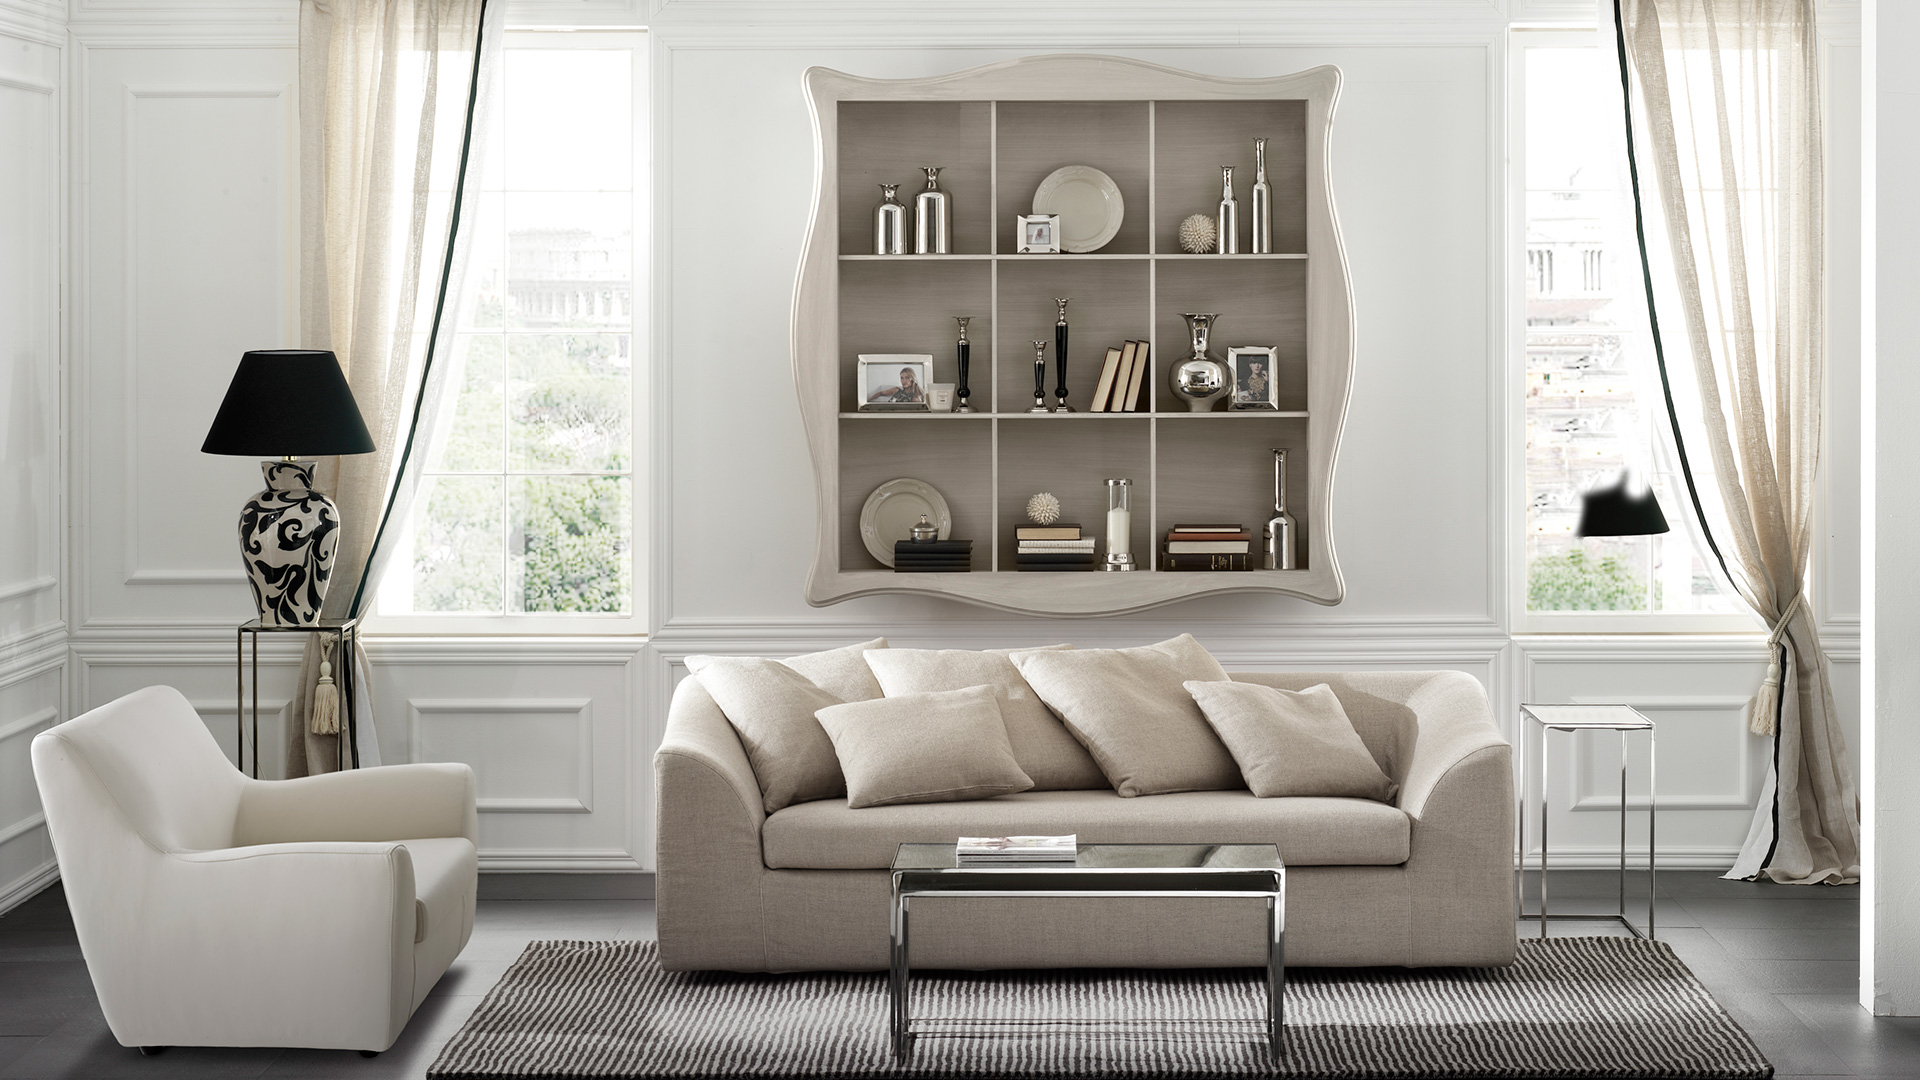 #595147 Raffaello Wall Shelving Unit Living Room Furniture Cantori with 1920x1080 px of Brand New Wall Shelving Units For Living Room 10801920 pic @ avoidforclosure.info